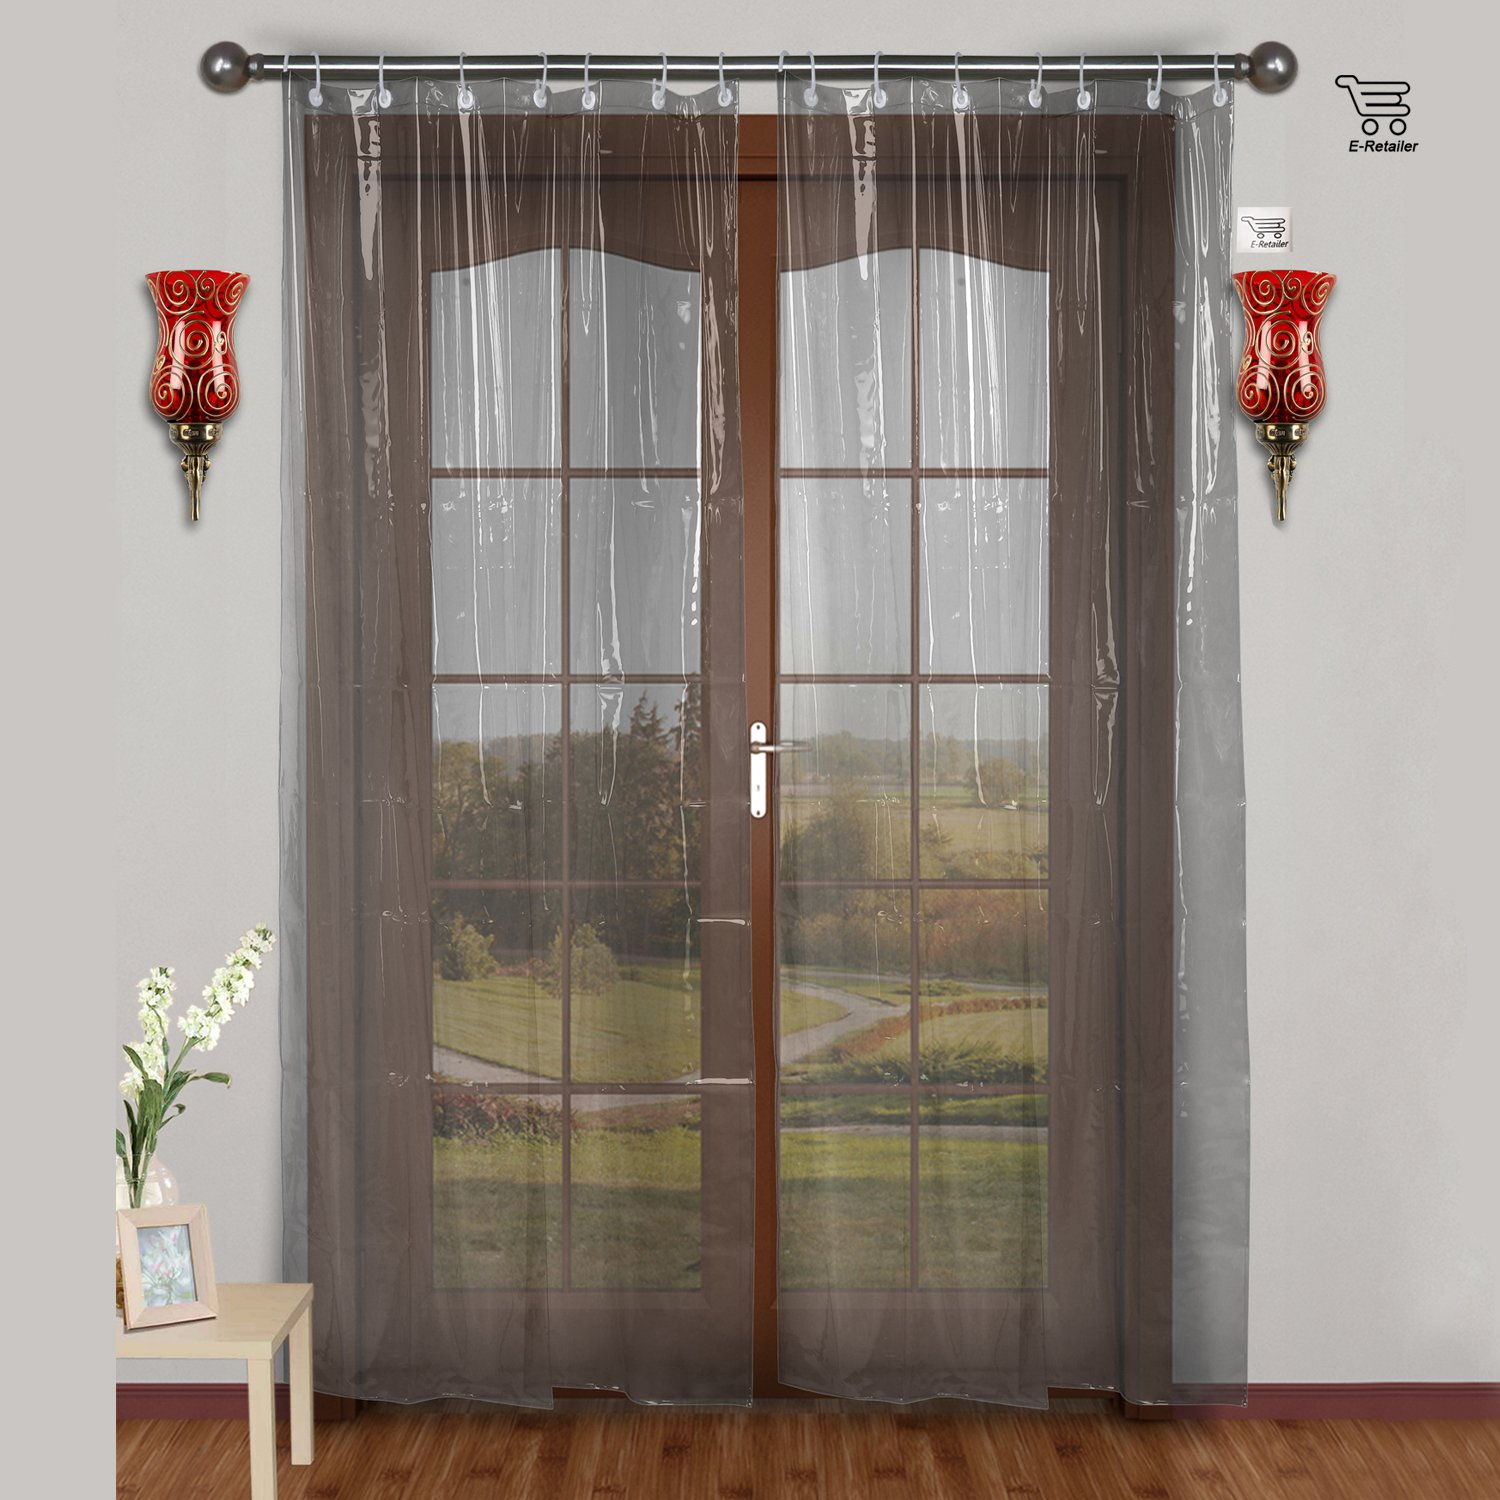 curtains of beige width visit window link thermal pin panels grommet the solid more drapery length image details by lullabi blackout set curtain